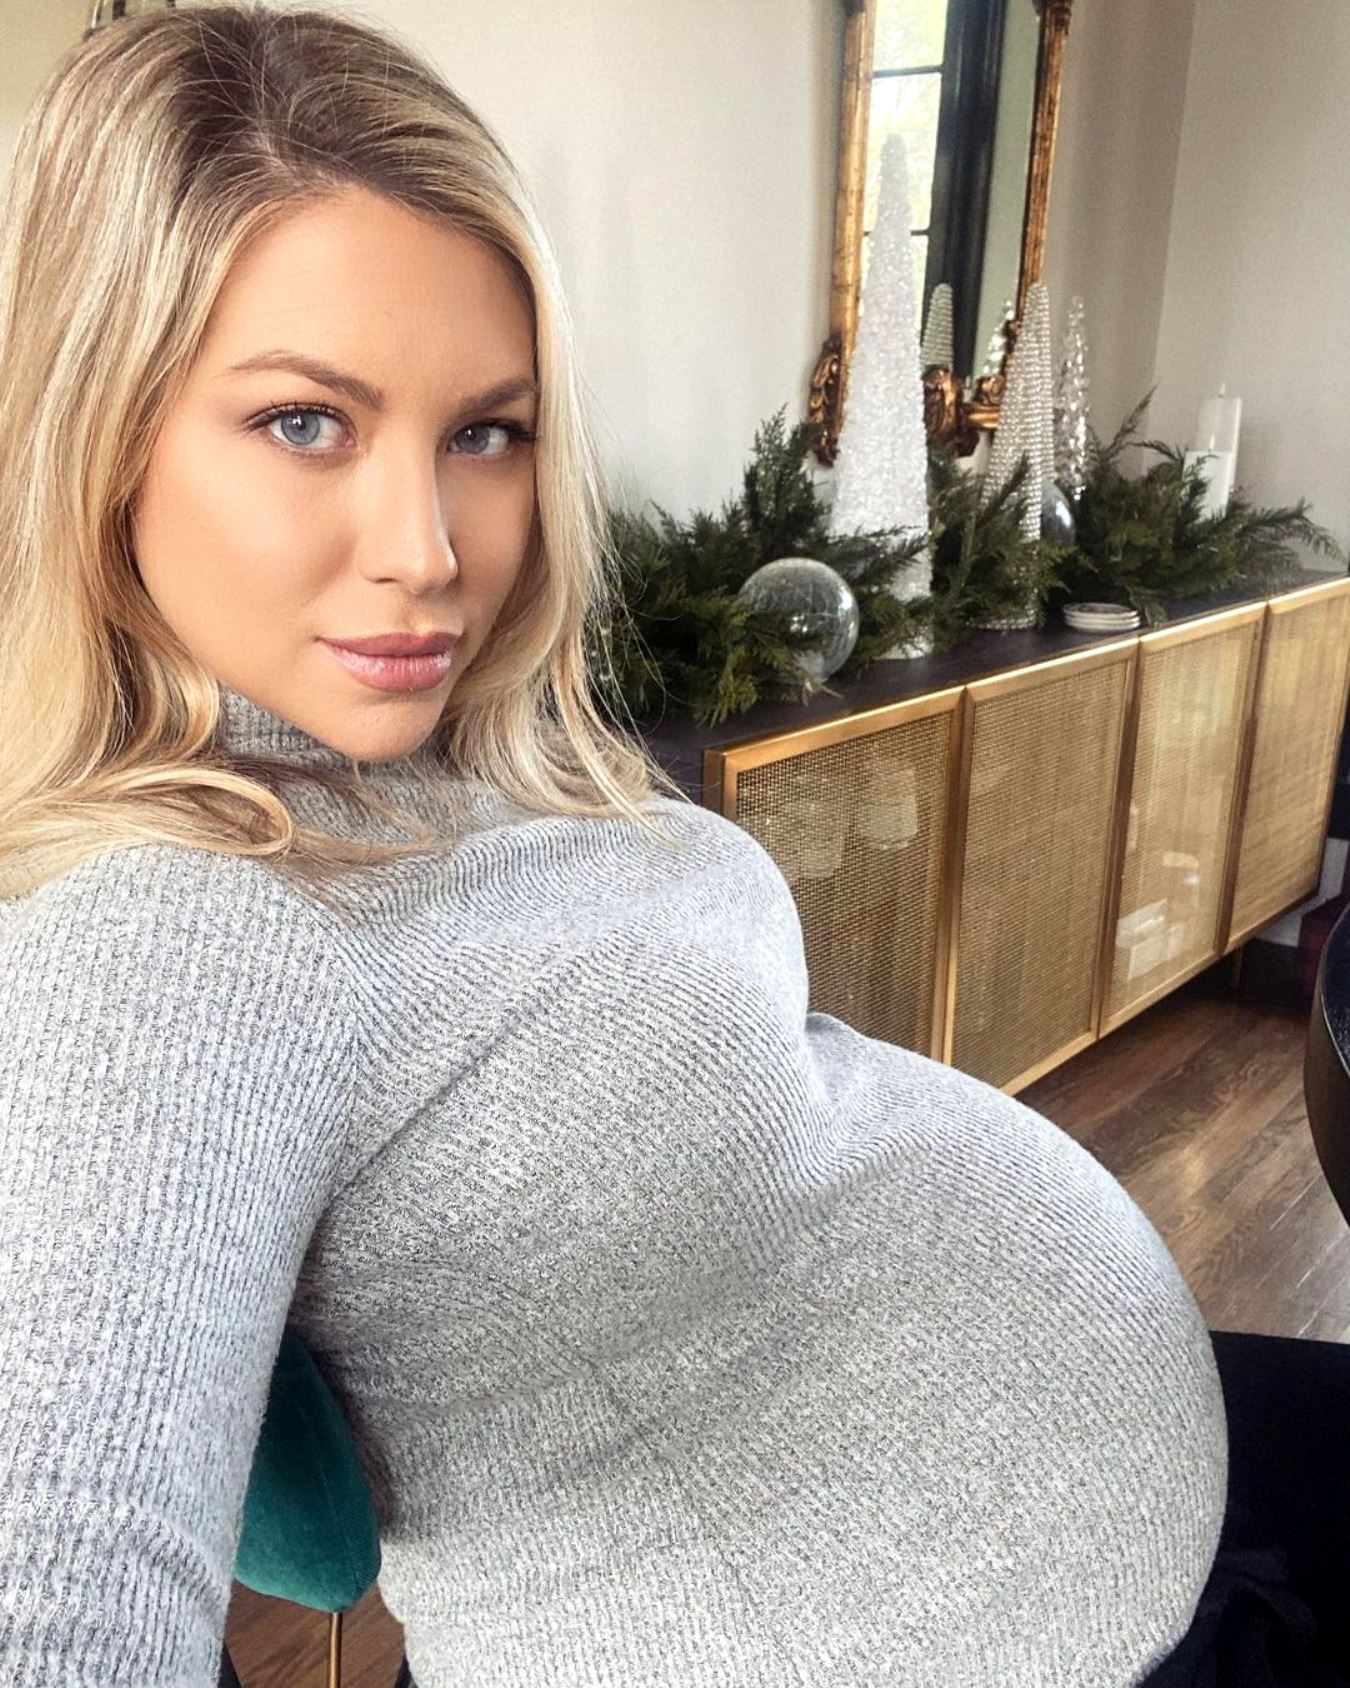 """Stassi Schroeder Says Daughter """"Saved Her"""" From Drugs and Alcoholism After Vanderpump Rules Firing, Admits She Would Have """"Lashed Out"""" If Not For Pregnancy"""